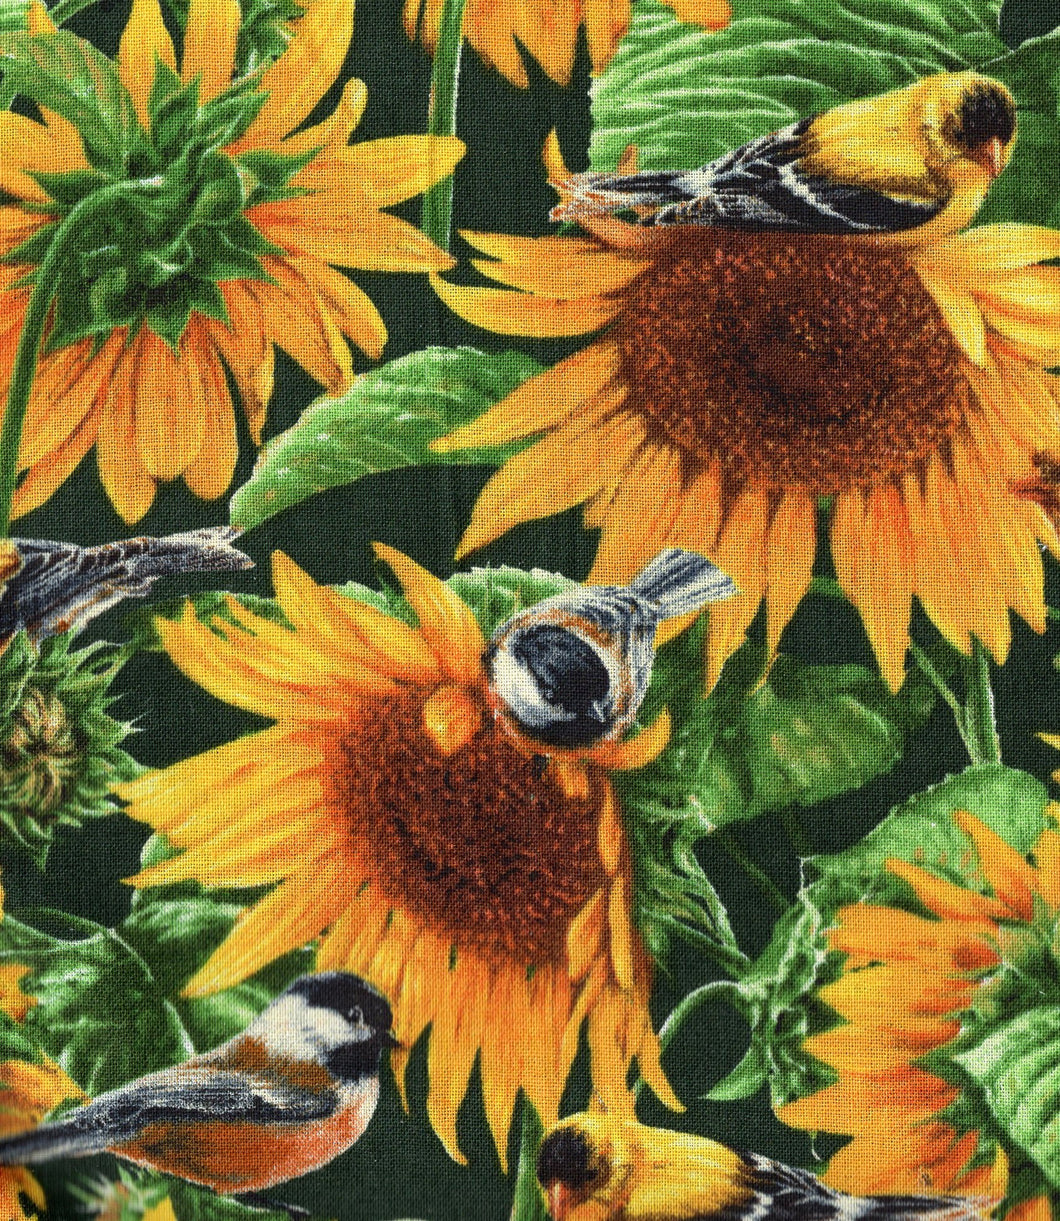 Sunflowers And Birds flo381